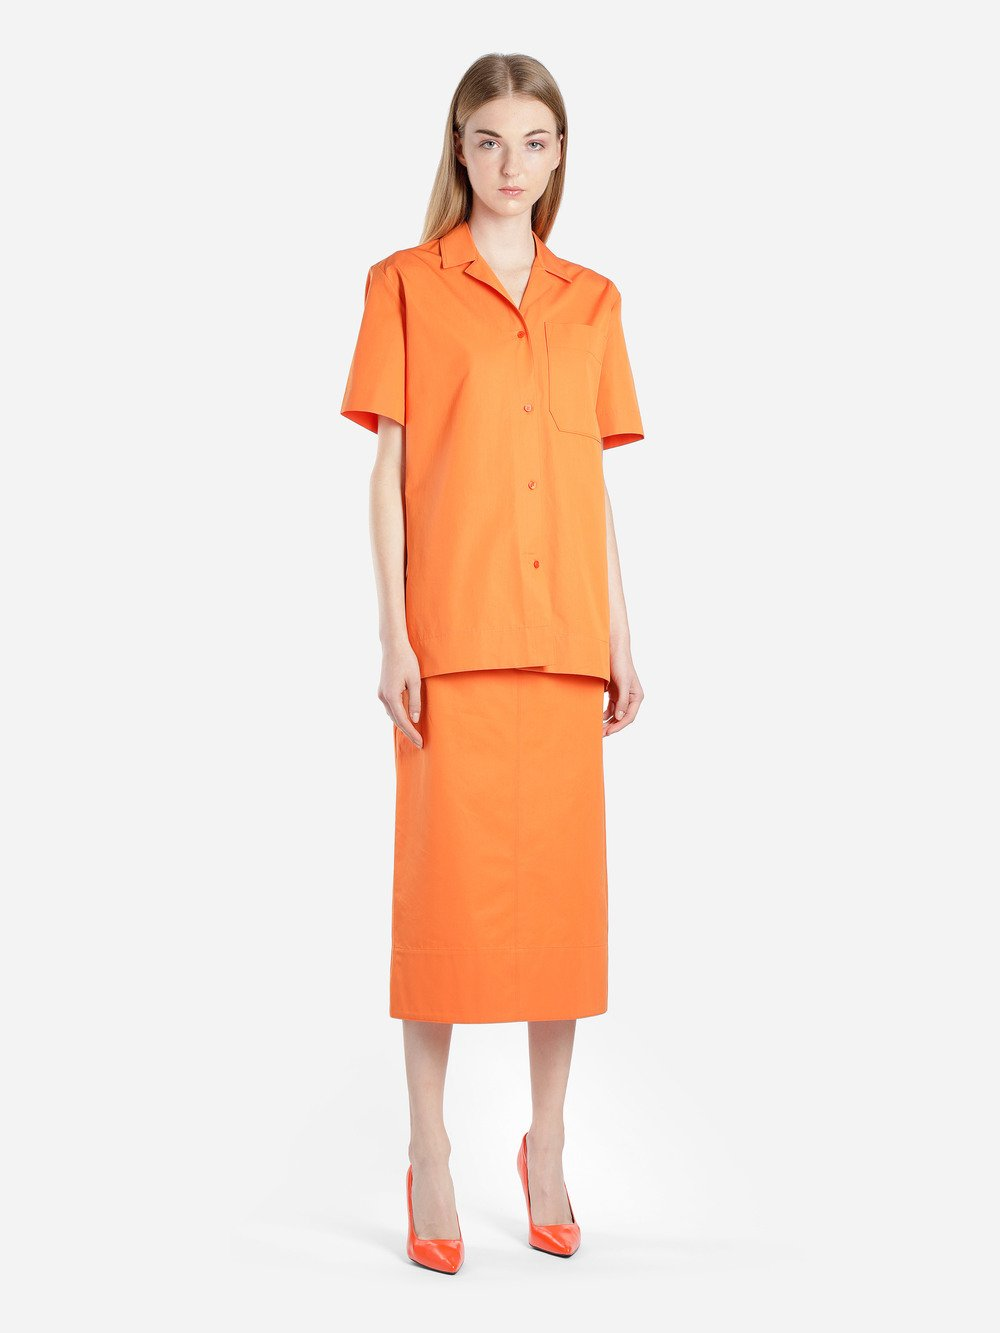 SS19T019DP ORANGE image